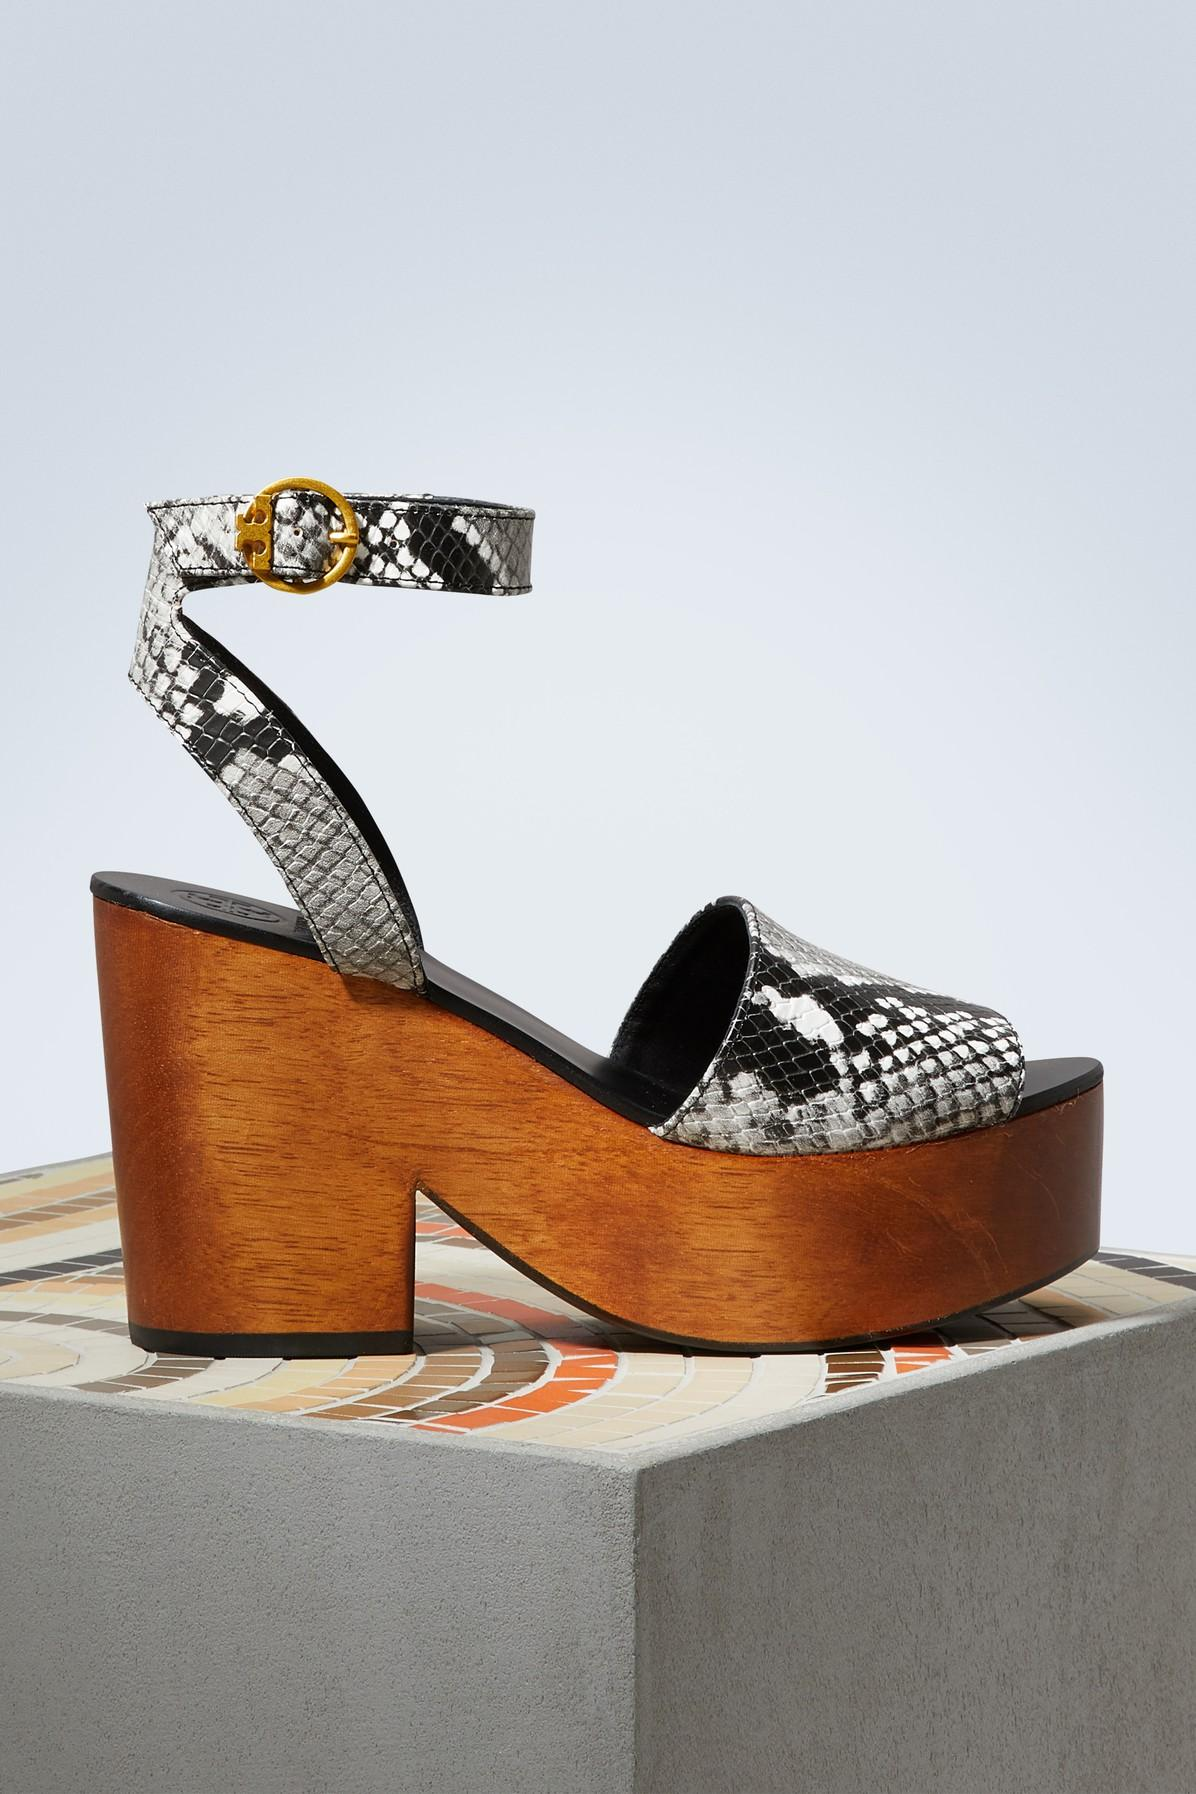 d20a5743930f Style Name  Tory Burch Camilla Genuine Calf Hair Platform Sandal (Women).  Style Number  5485378 1. Available in stores.